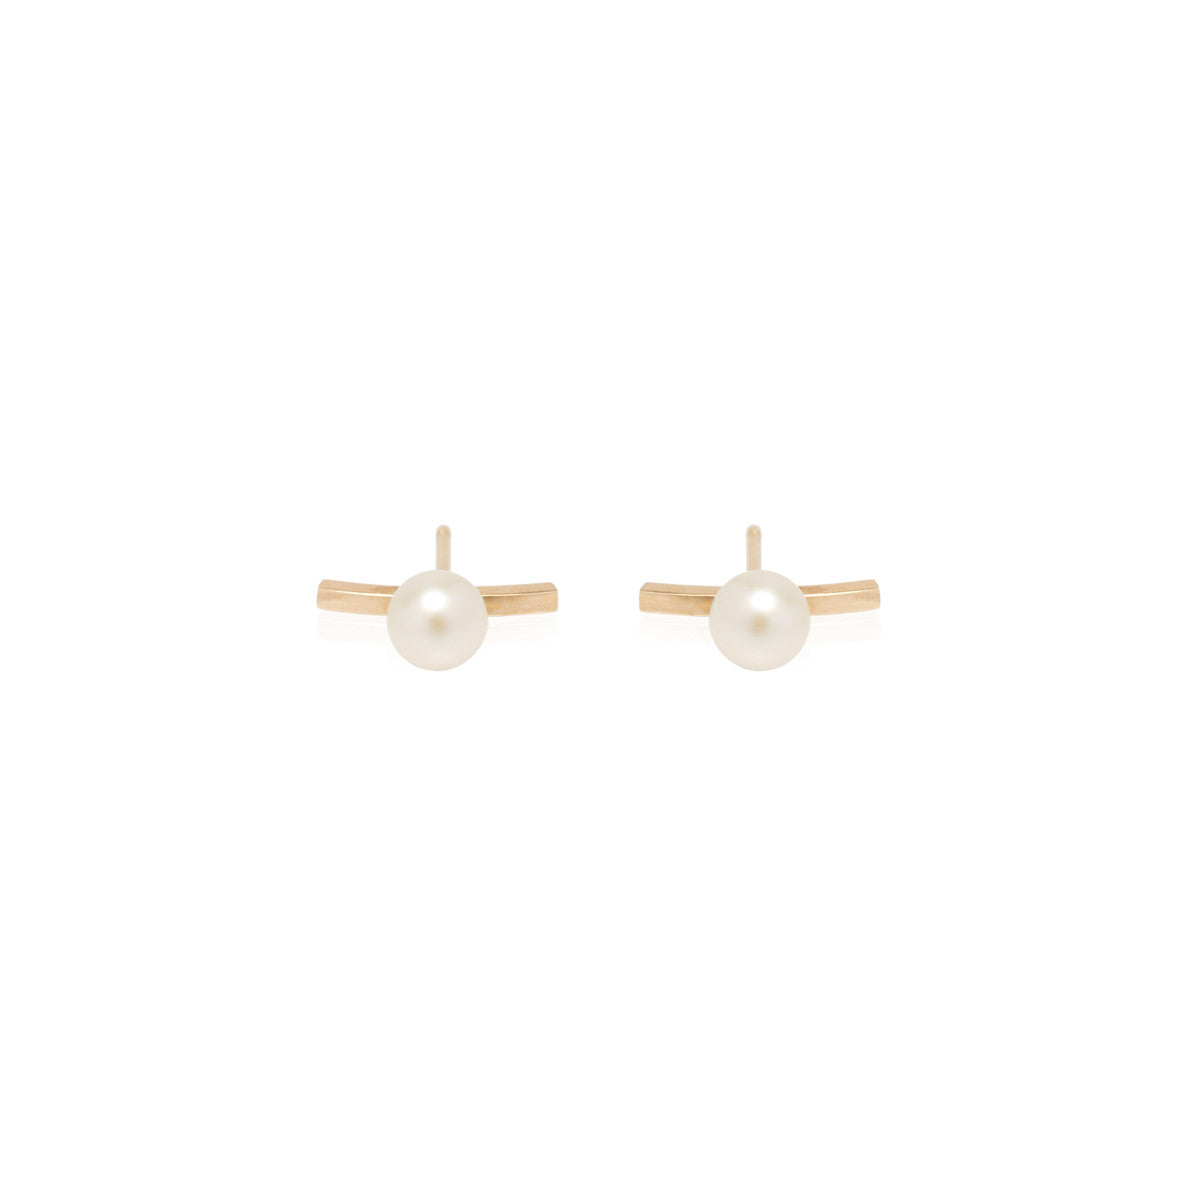 Zoë Chicco 14kt Yellow Gold Curved Bar Staple Pearl Stud Earrings